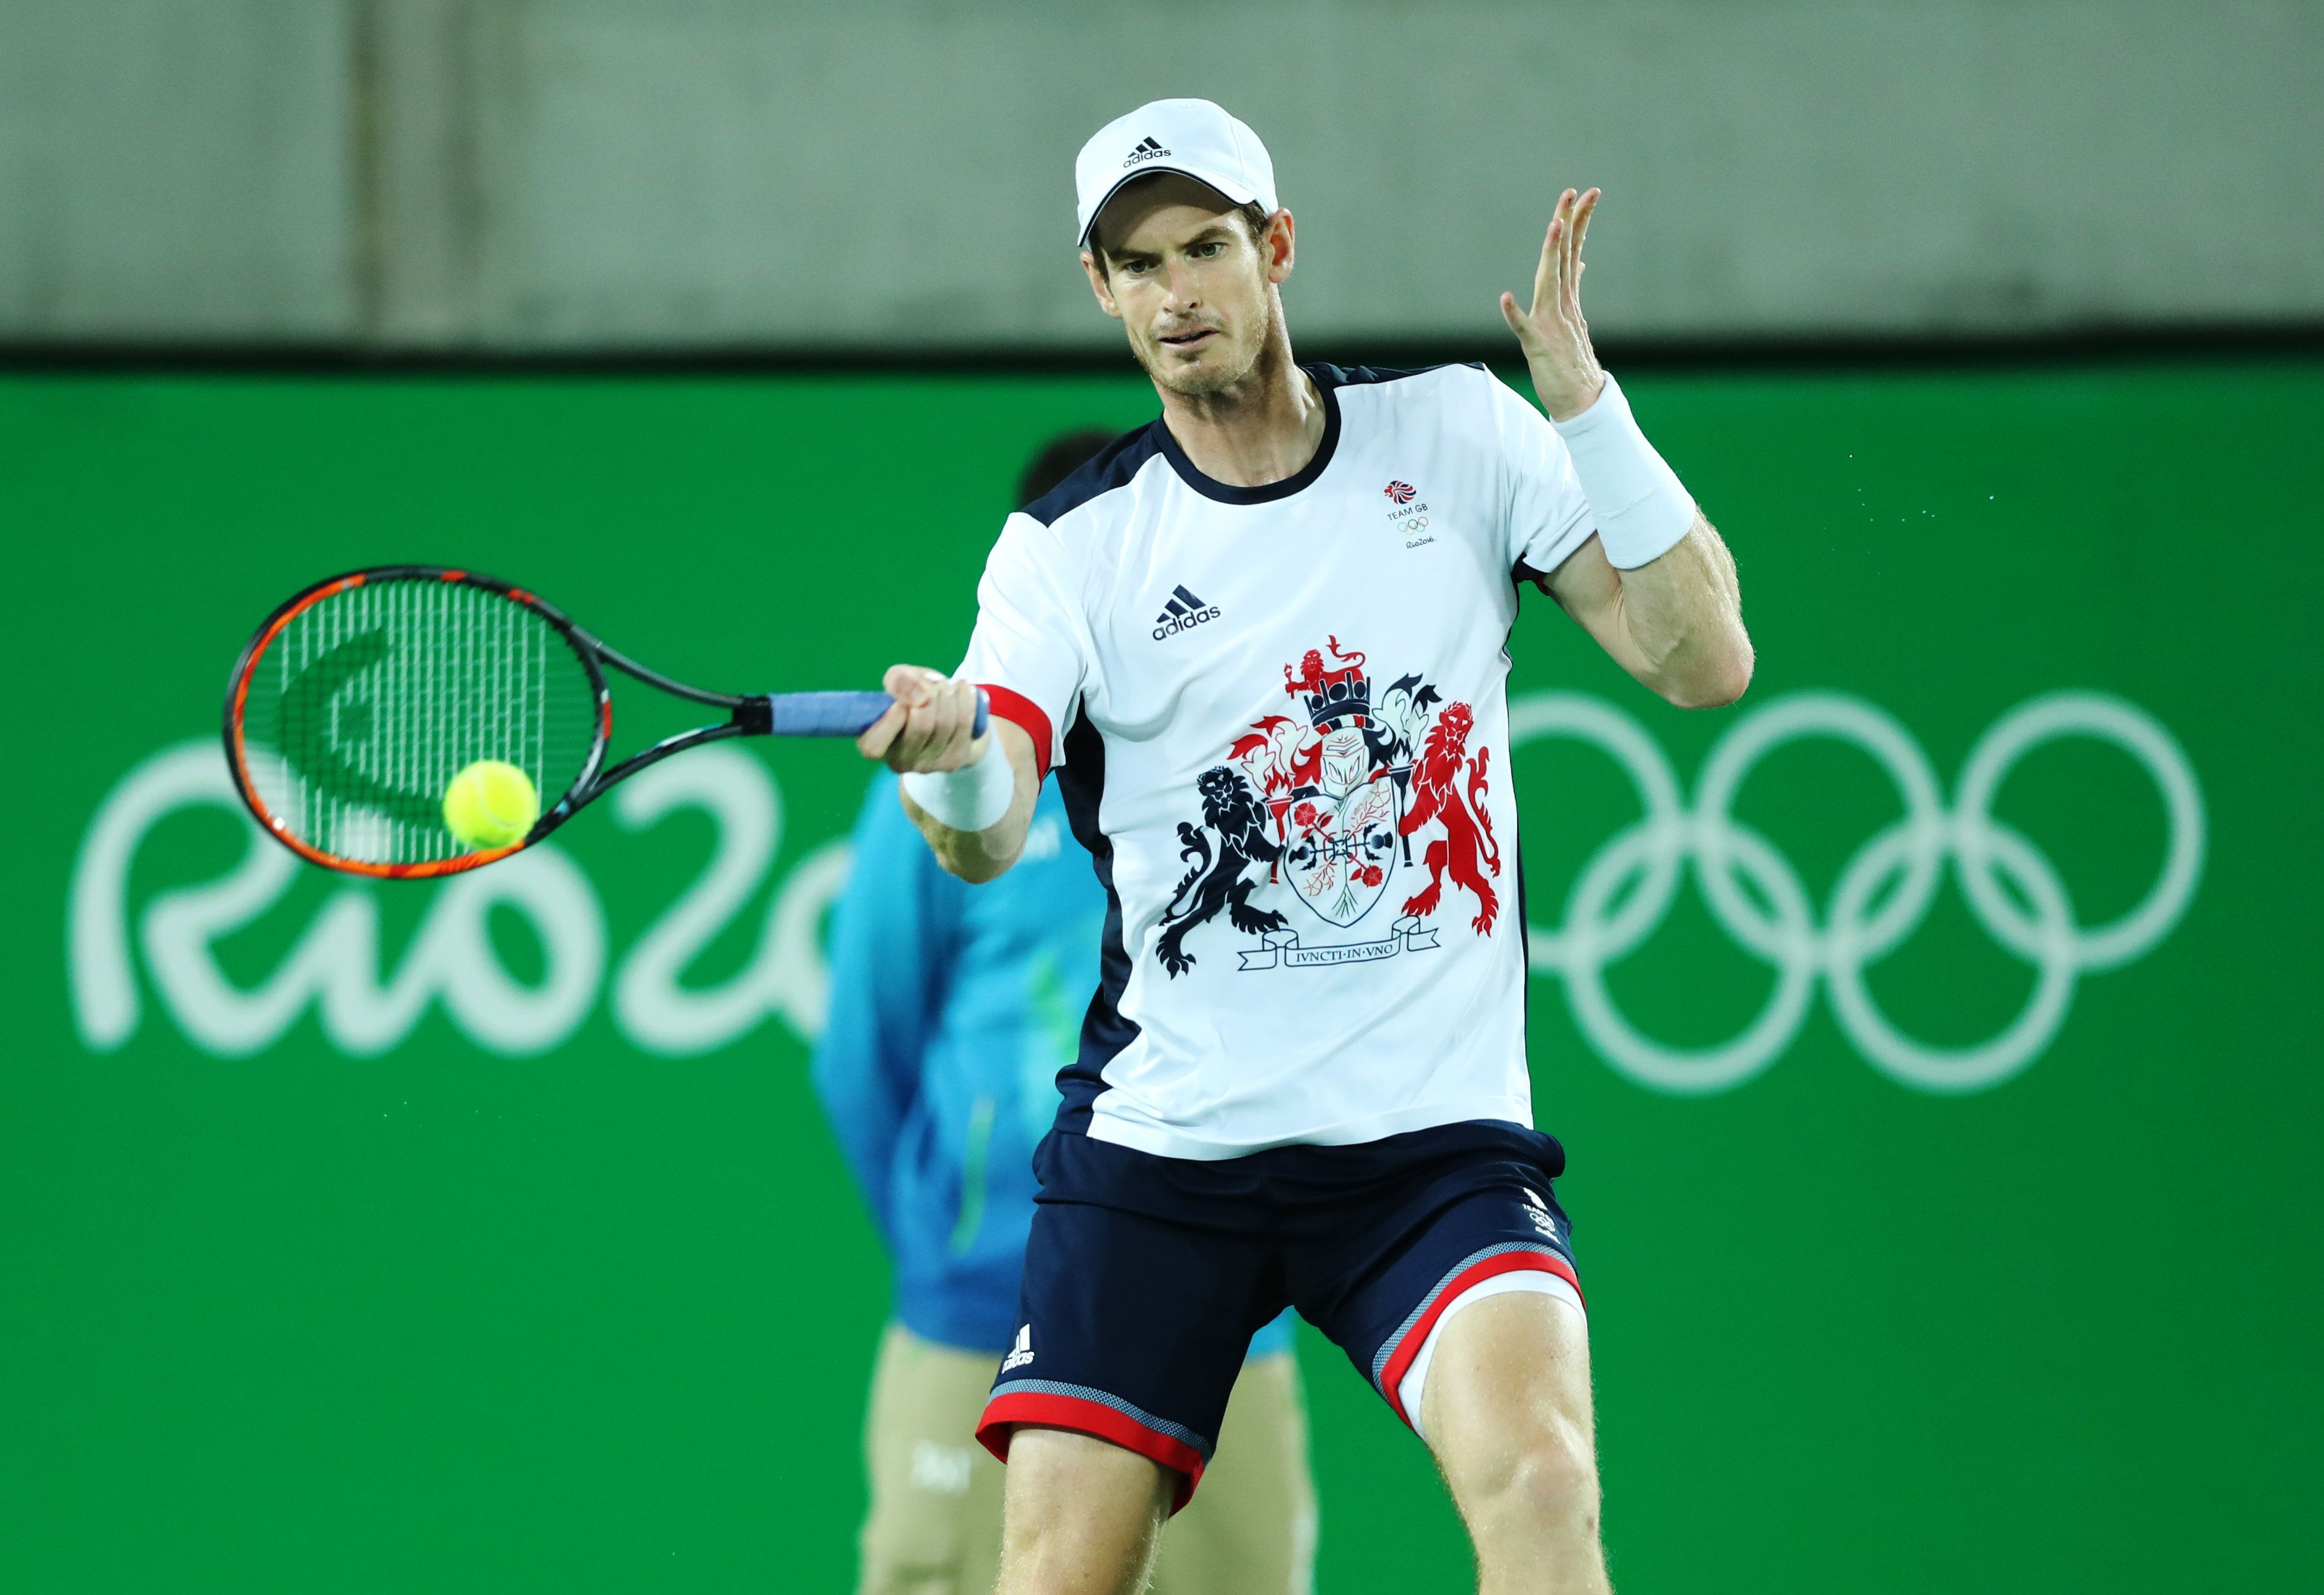 RIO DE JANEIRO, BRAZIL - AUGUST 14:  Andy Murray of Great Britain in action during the Men's singles Gold medal match against Juan Martin del Potro of Argentina at Olympic Tennis Centre on August 14, 2016 in Rio de Janeiro, Brazil. (Photo by Ian MacNicol/Getty Images)